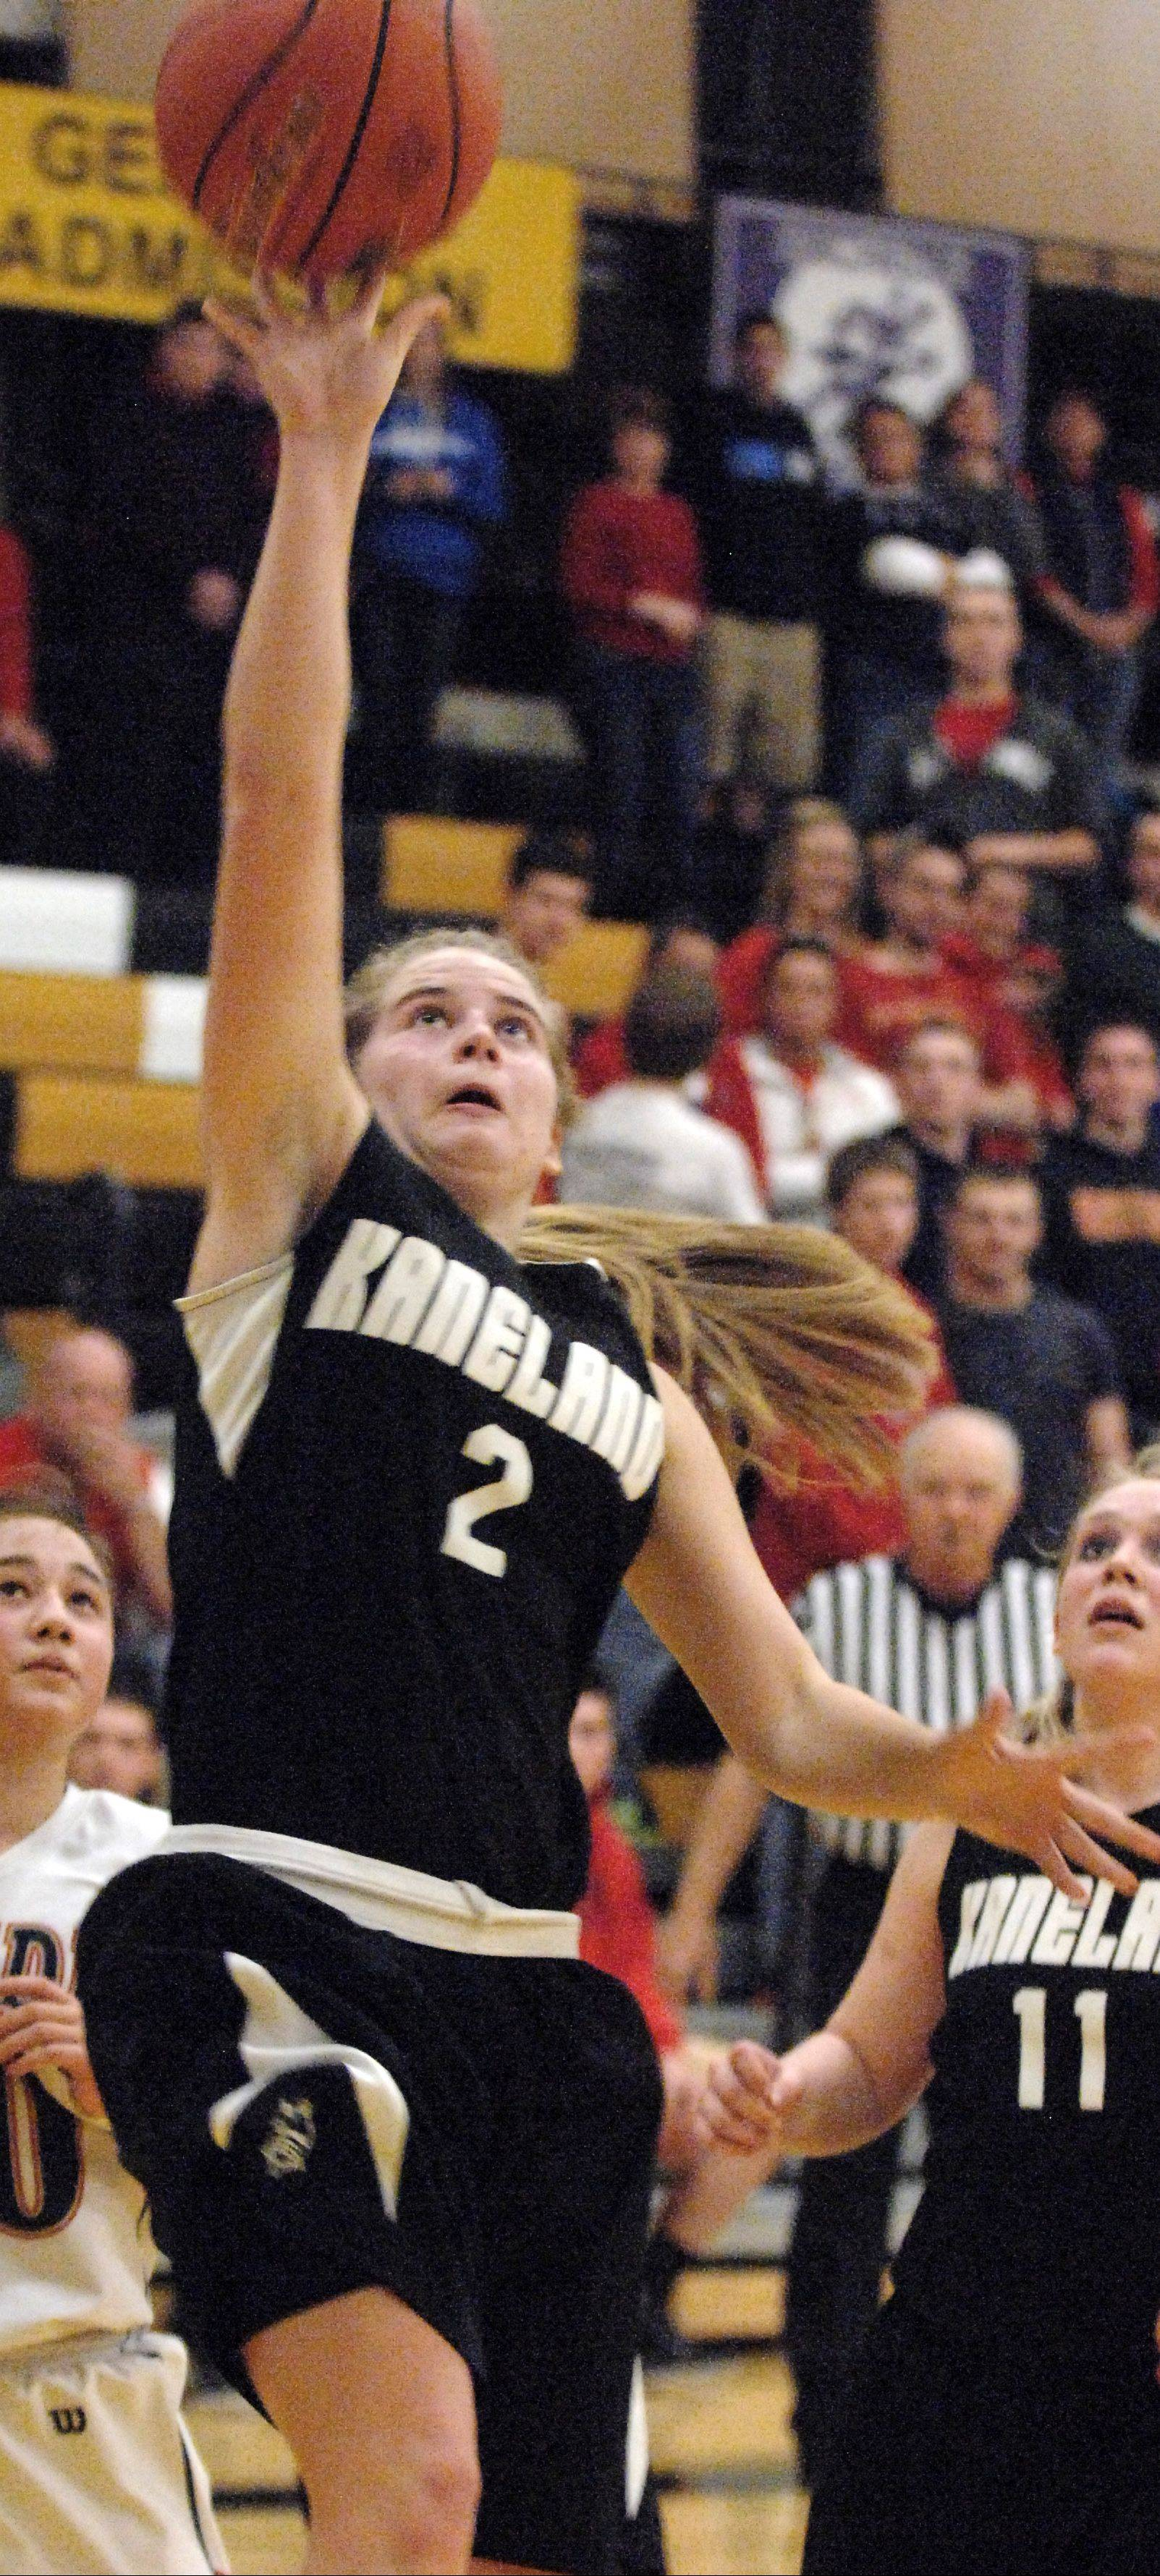 Kaneland's Sarah Grams, pictured going in for a layup in last year's sectional championship game against Belvidere North, is one of the seniors who has helped turn the Knights' record around the past few years.